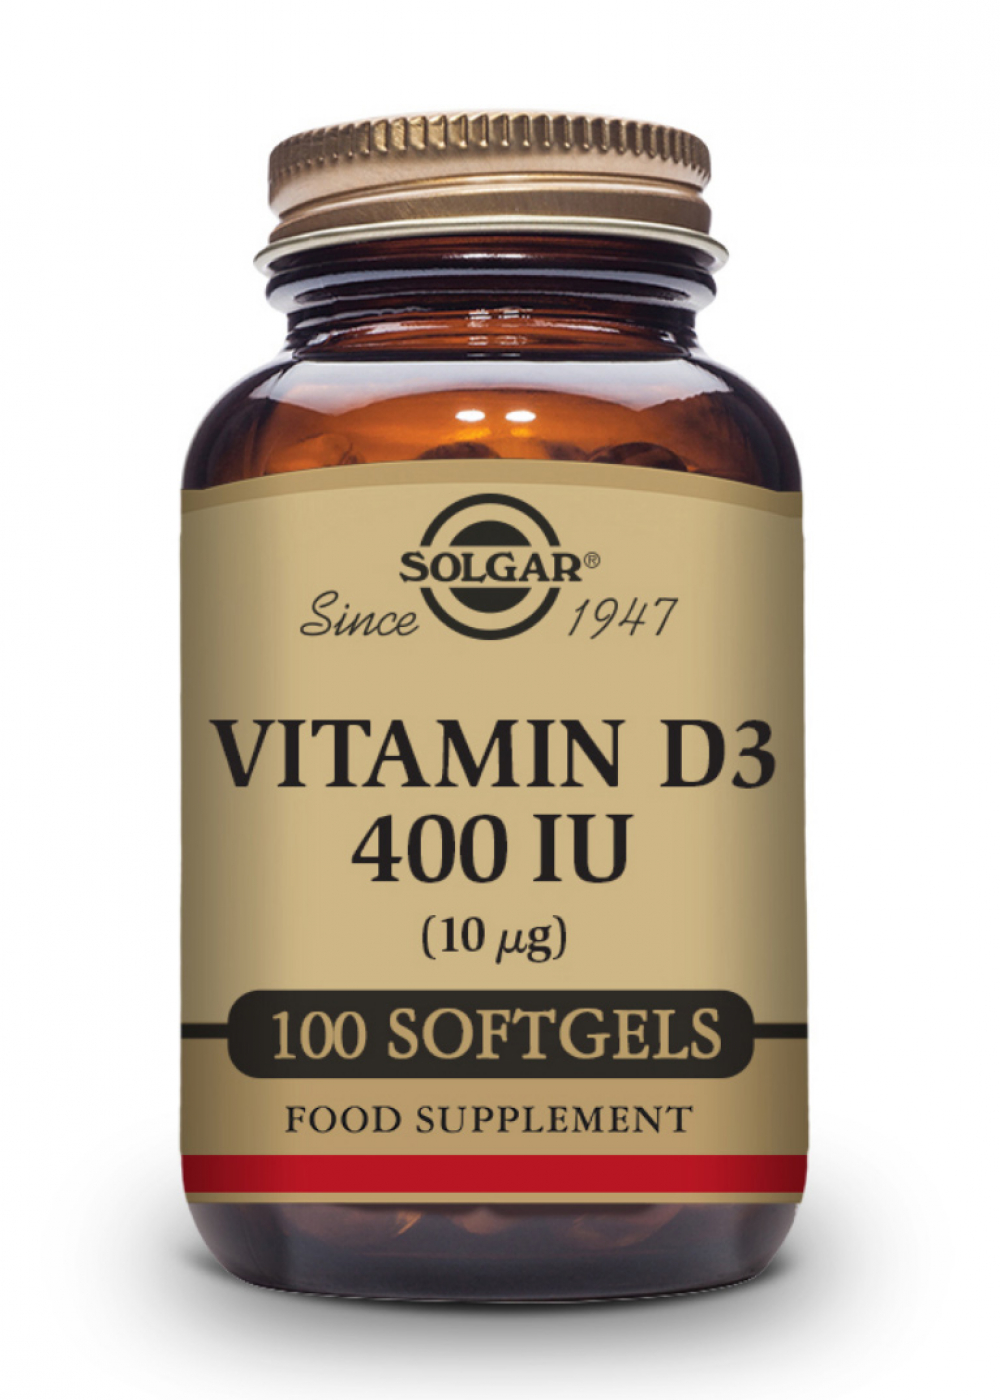 Solgar Vitamin D3 400 IU (10mcg) 100 Softgels